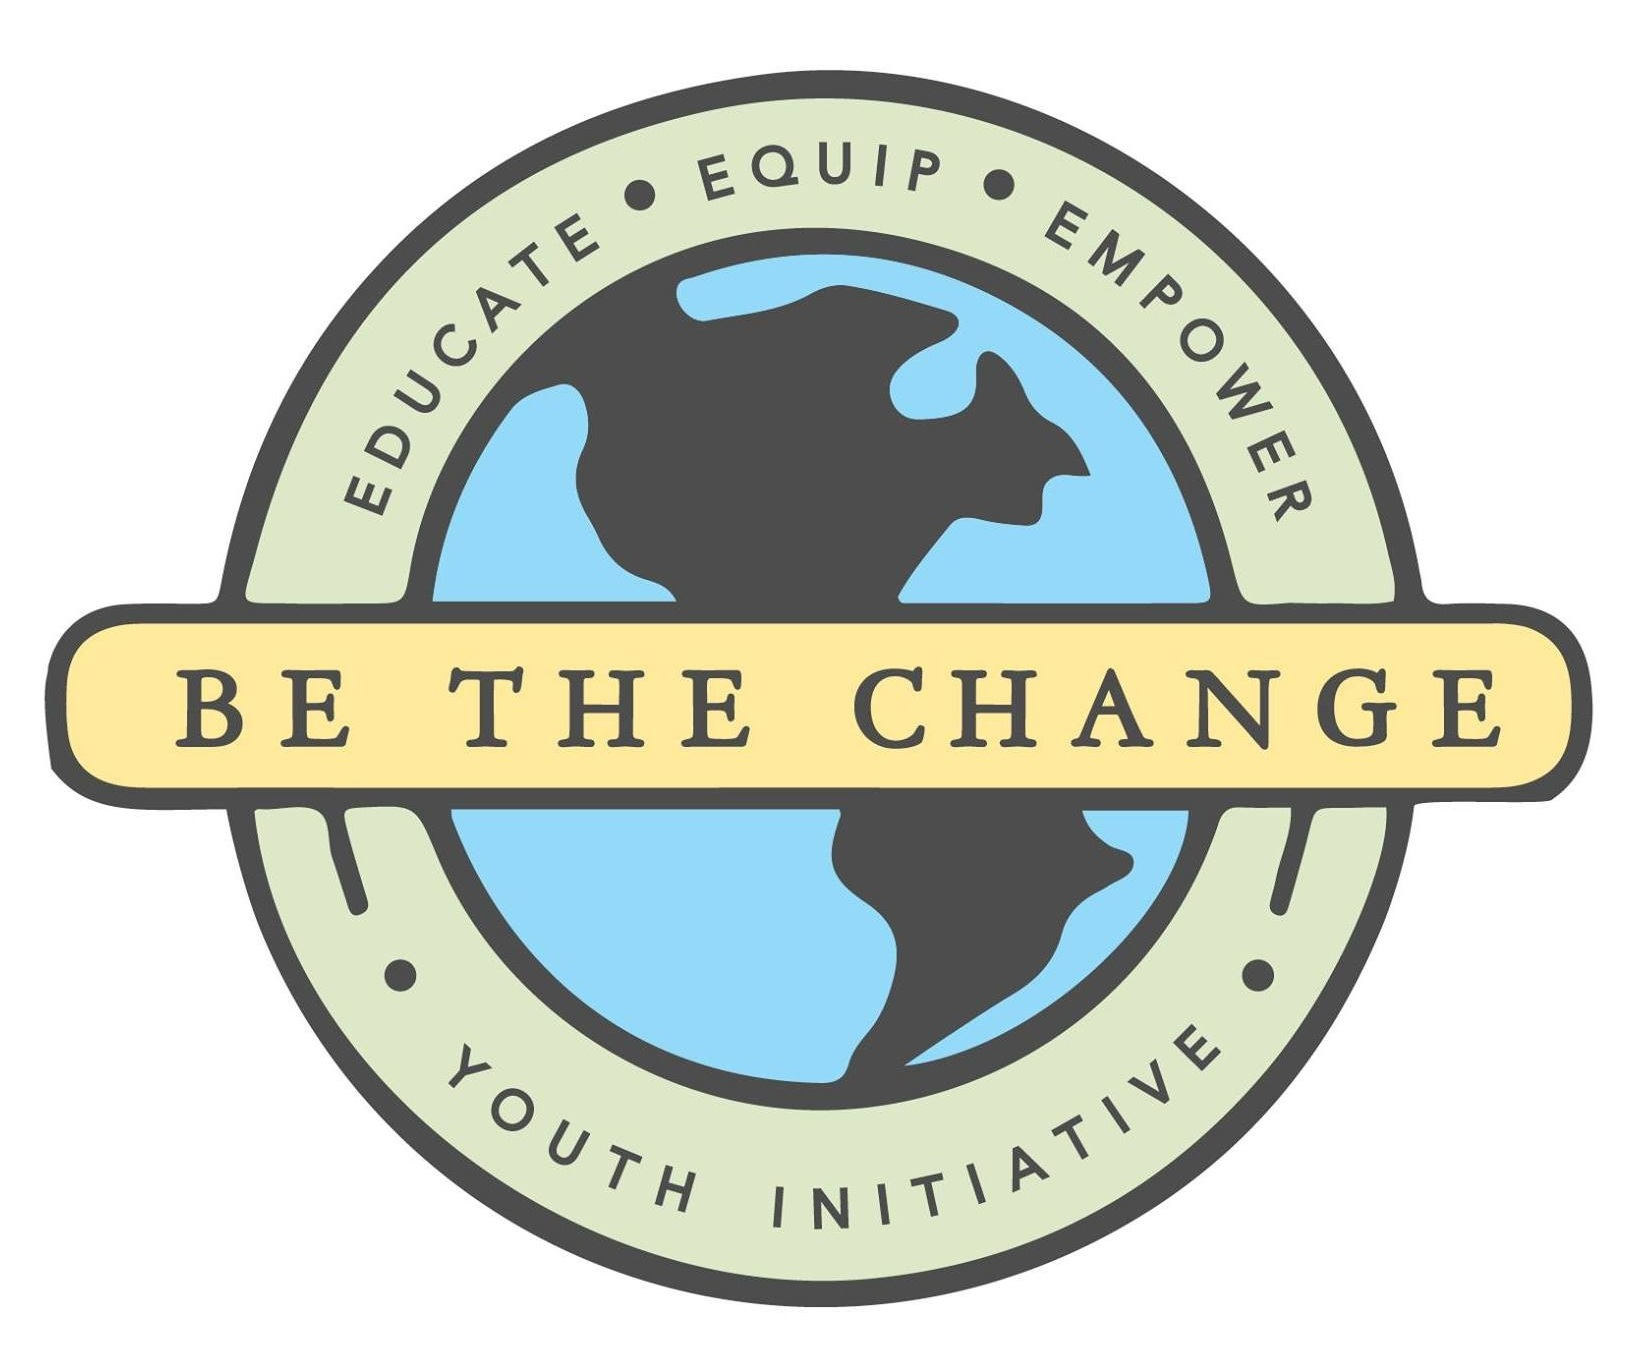 BE THE CHANGE YOUTH INITIATIVE - Non-profit Youth Organization